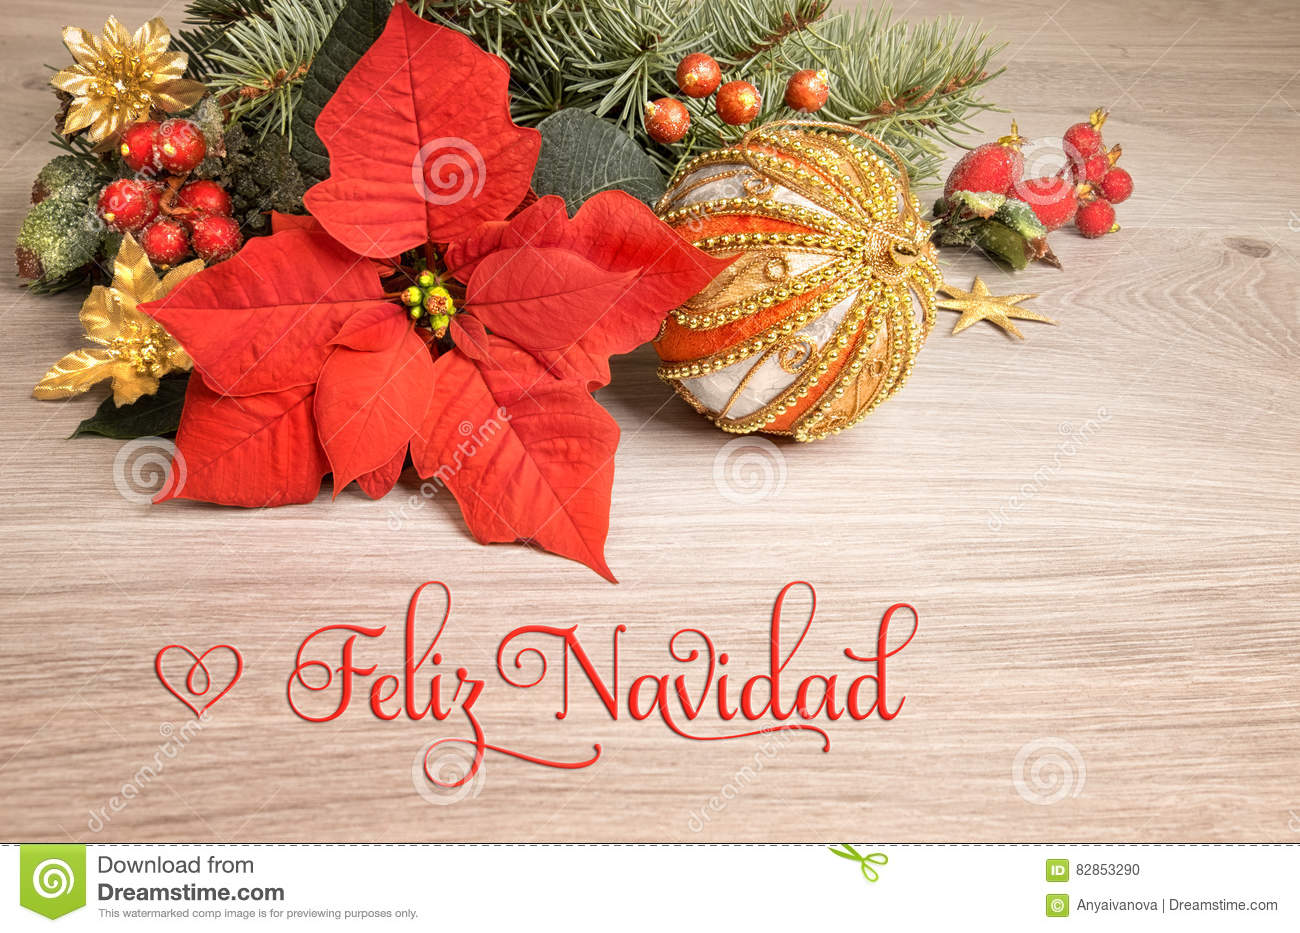 wooden background with poinsettia and decorated christmas tree twigs text on the picture means merry christmas in spanish